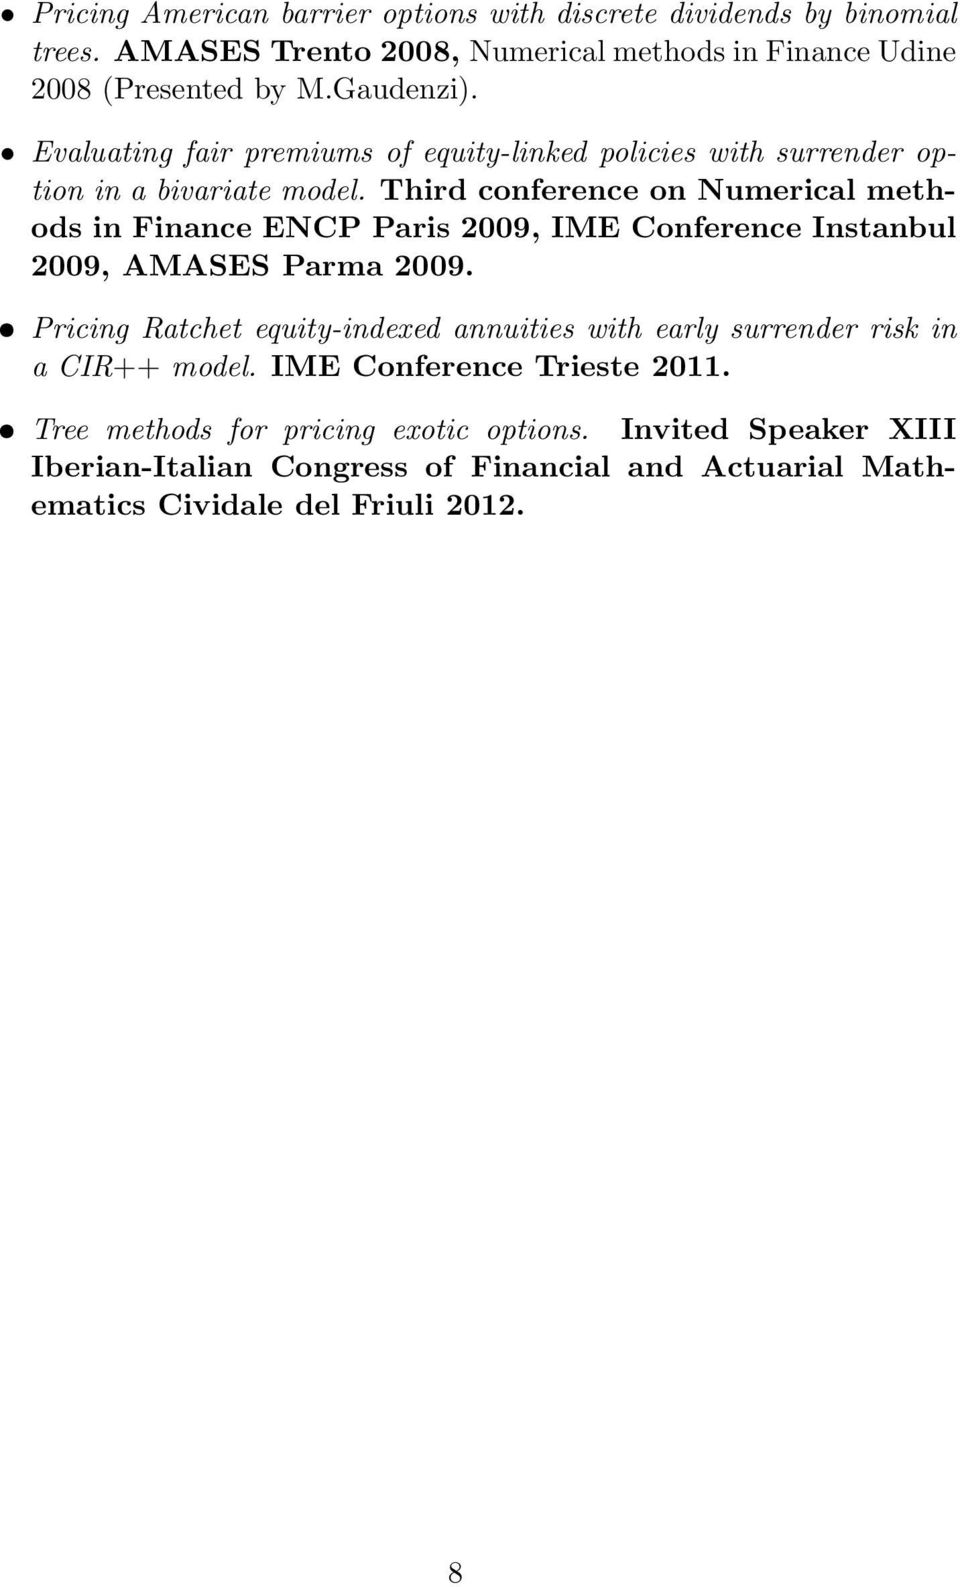 Third conference on Numerical methods in Finance ENCP Paris 2009, IME Conference Instanbul 2009, AMASES Parma 2009.